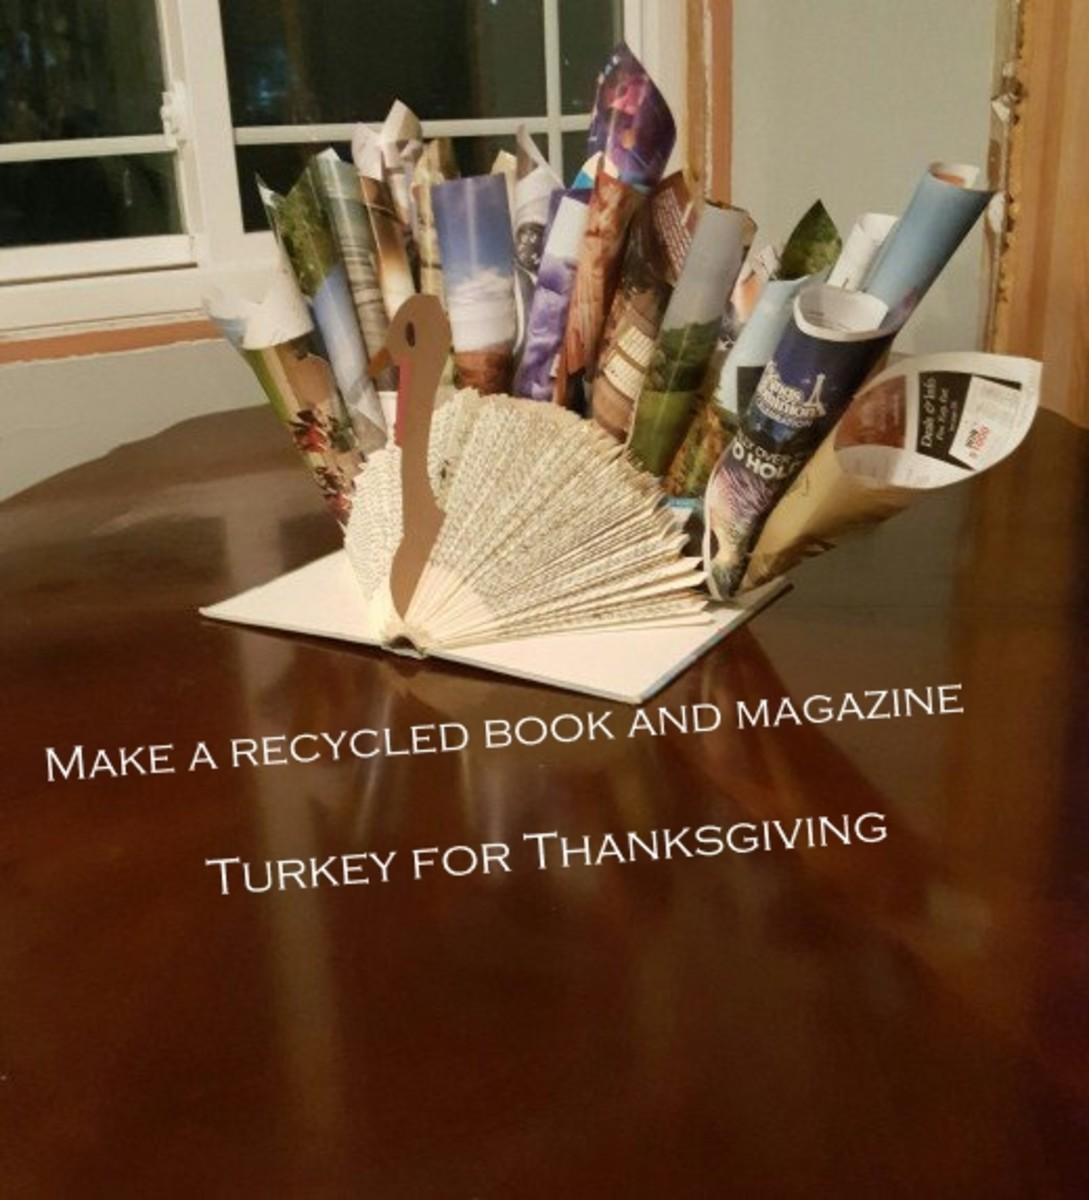 Adorable DIY Recycled Book and Magazine Turkey for Thanksgiving